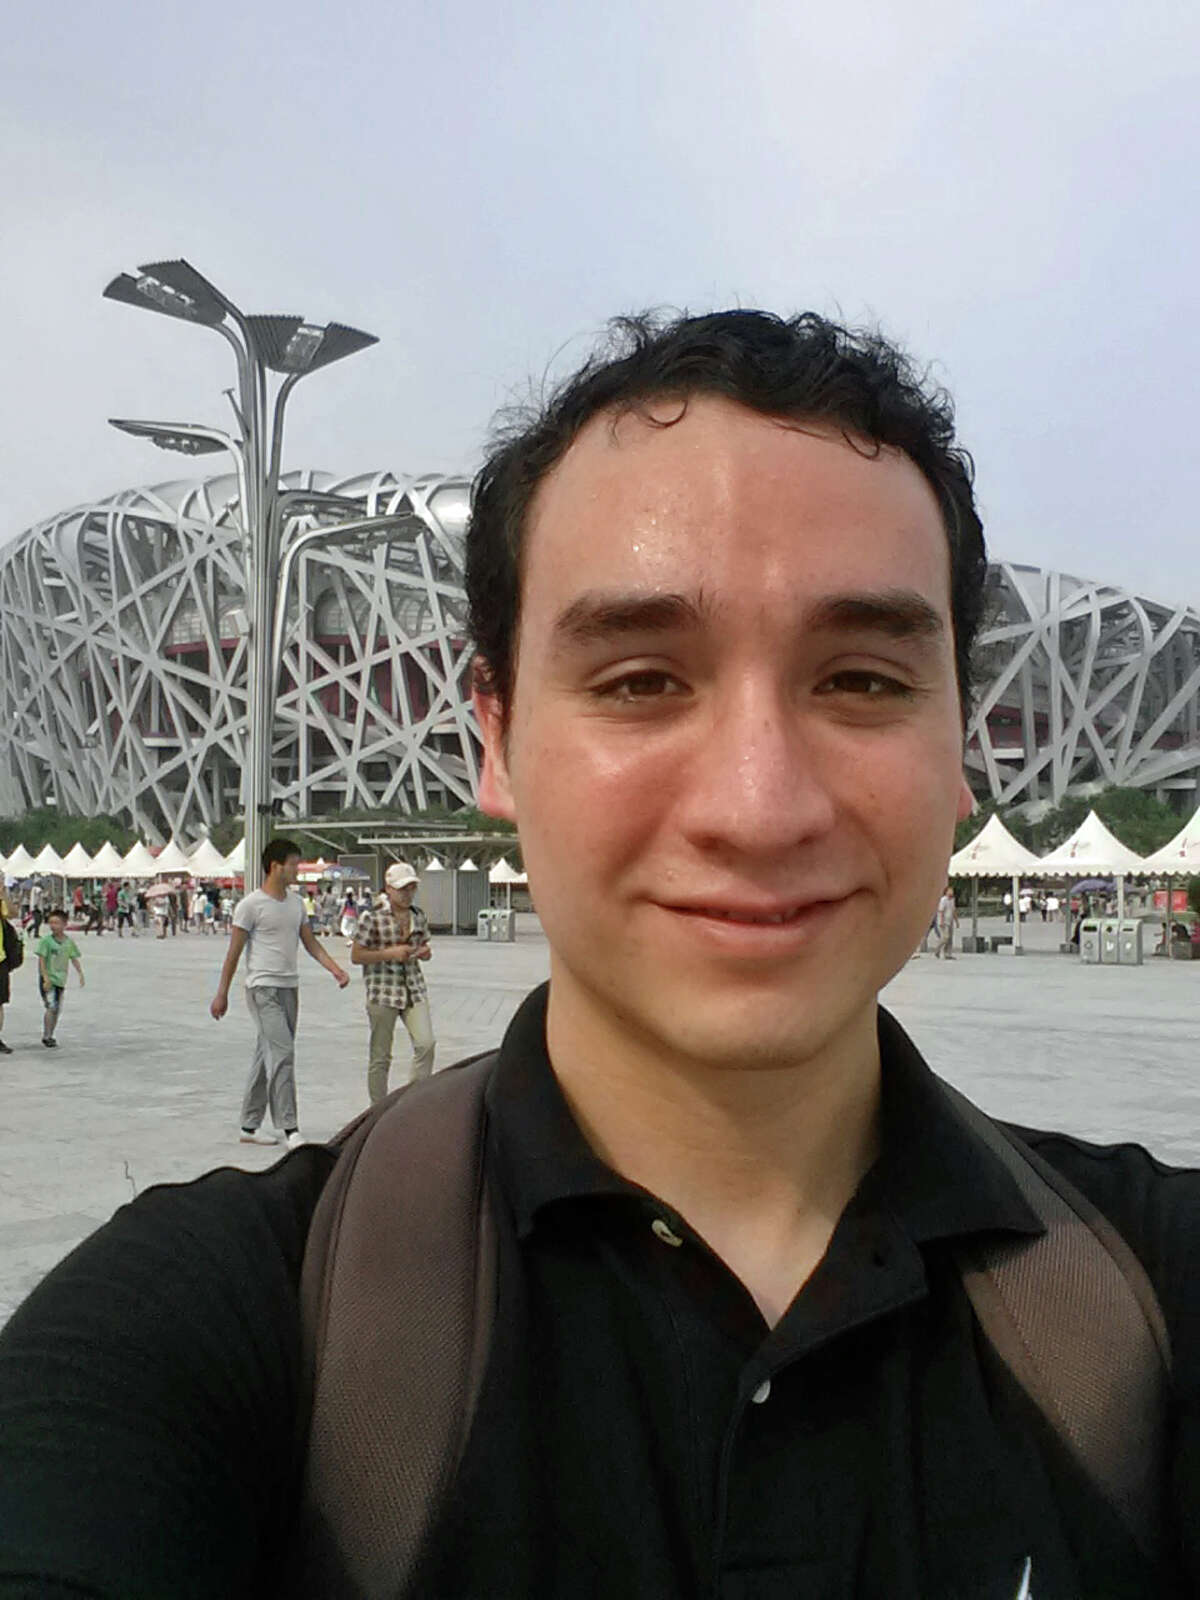 Andres Parrado in front of the Olympic swimming center in Beijing. A Princeton student who went through the ELL program at Westhill, Parrado says students must be engaged to improve the program.